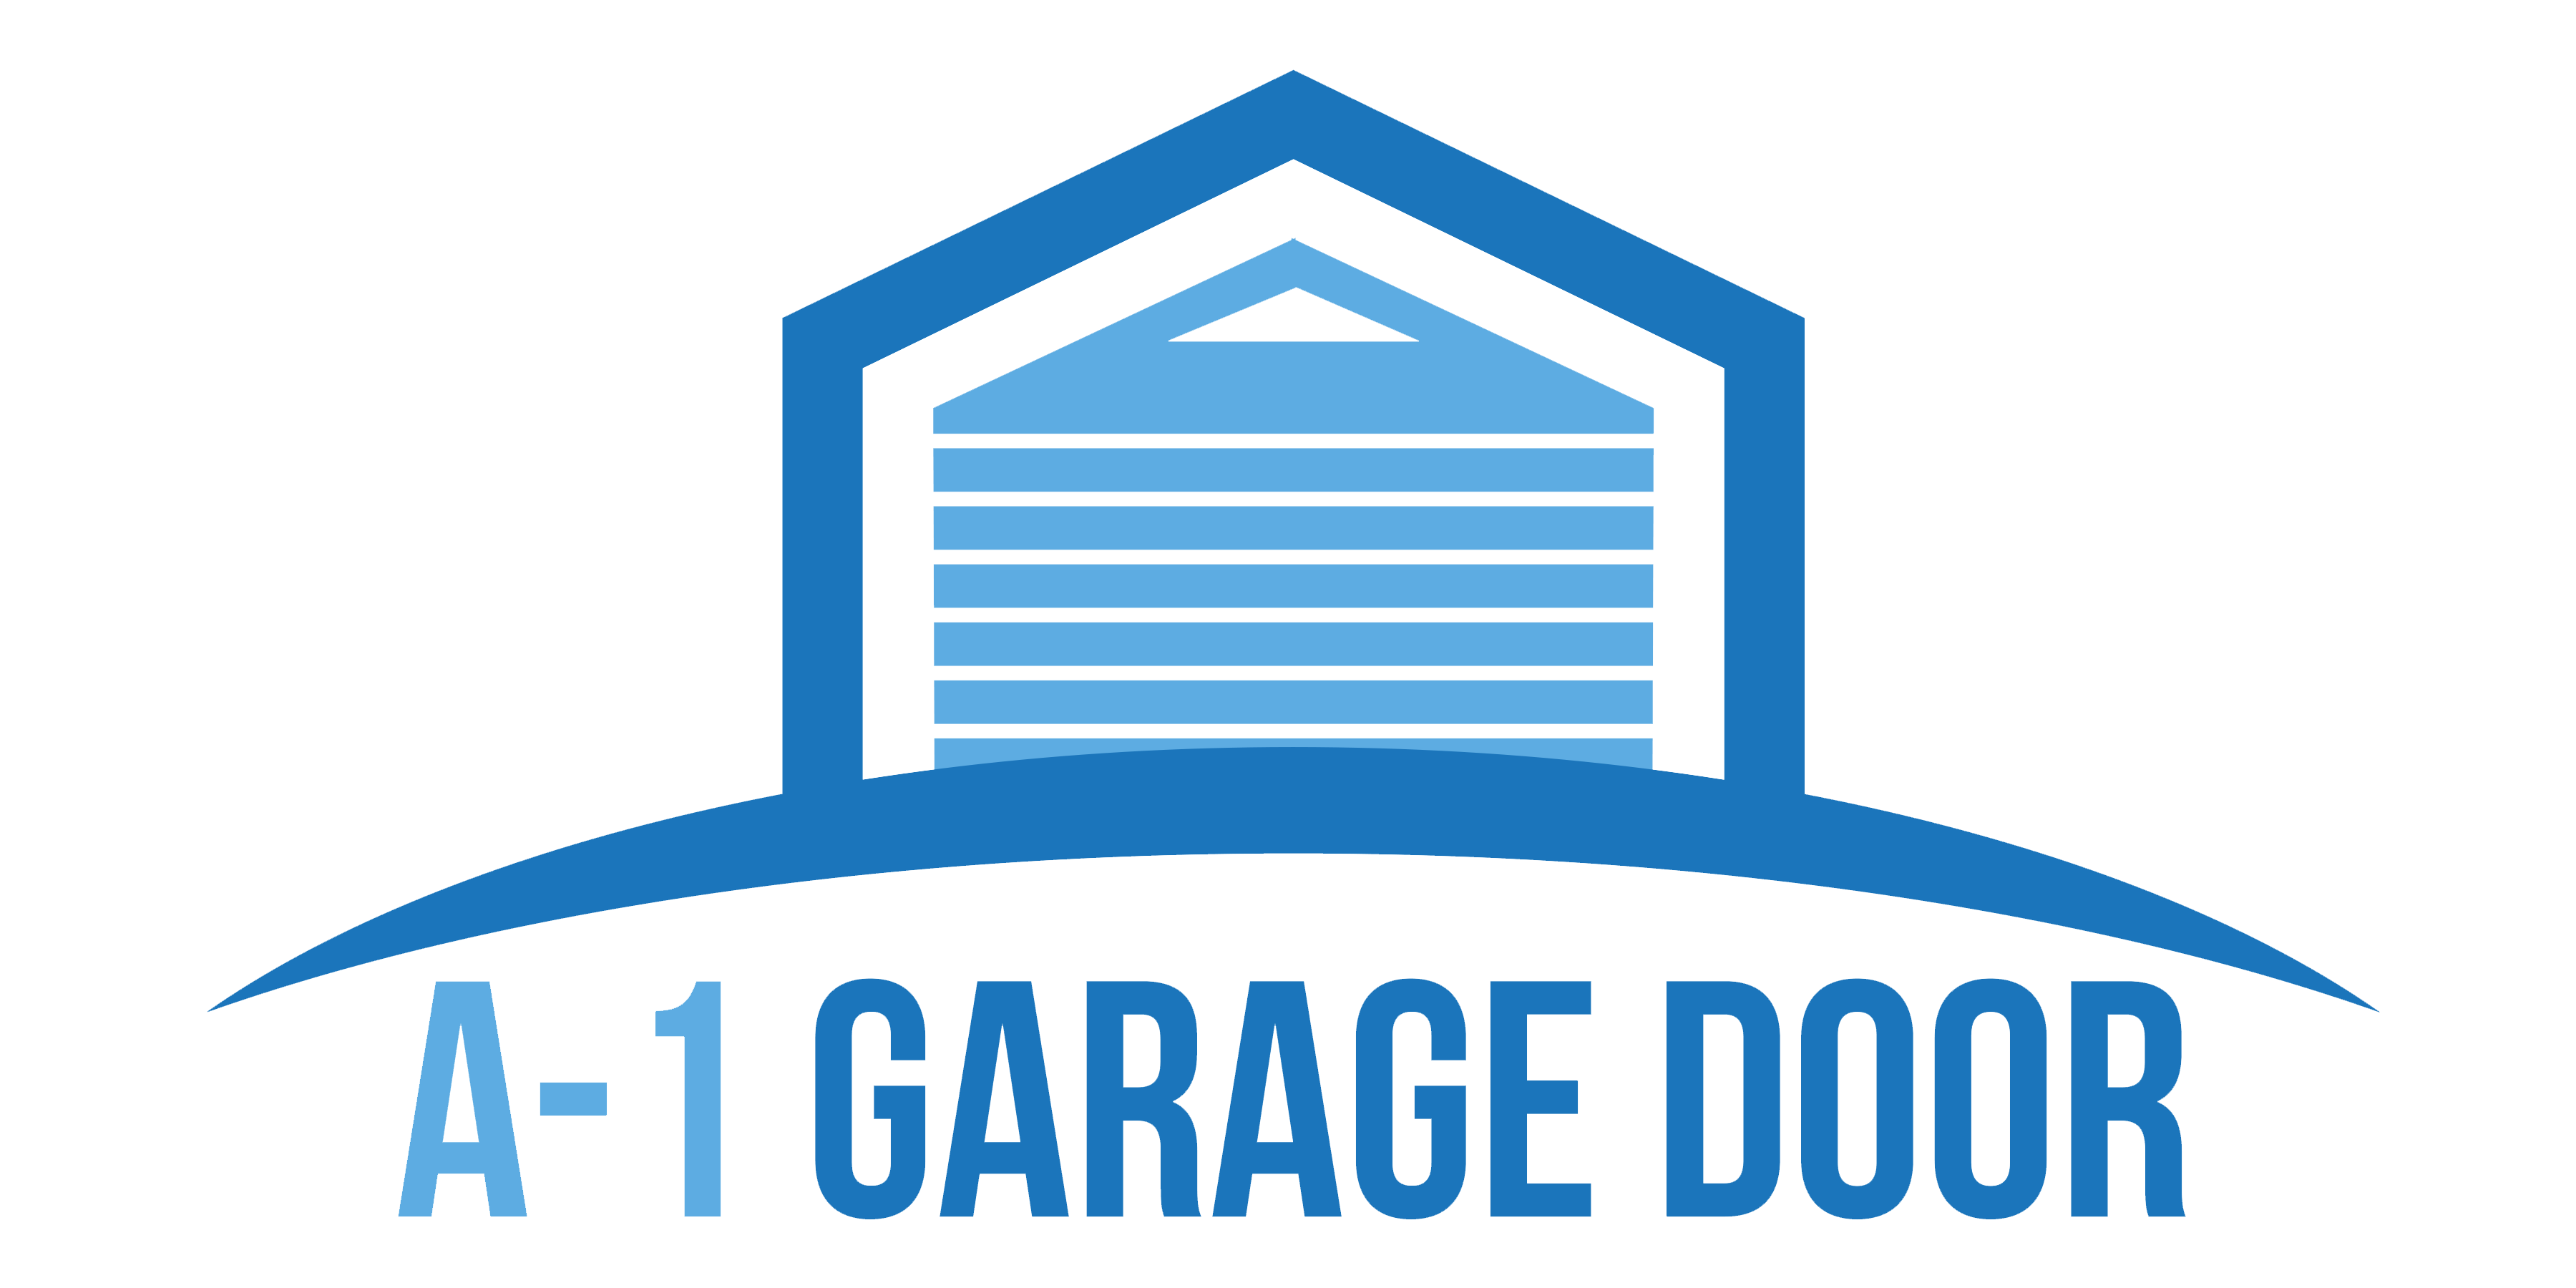 A1 Garage door garage door installation repaired  serviced